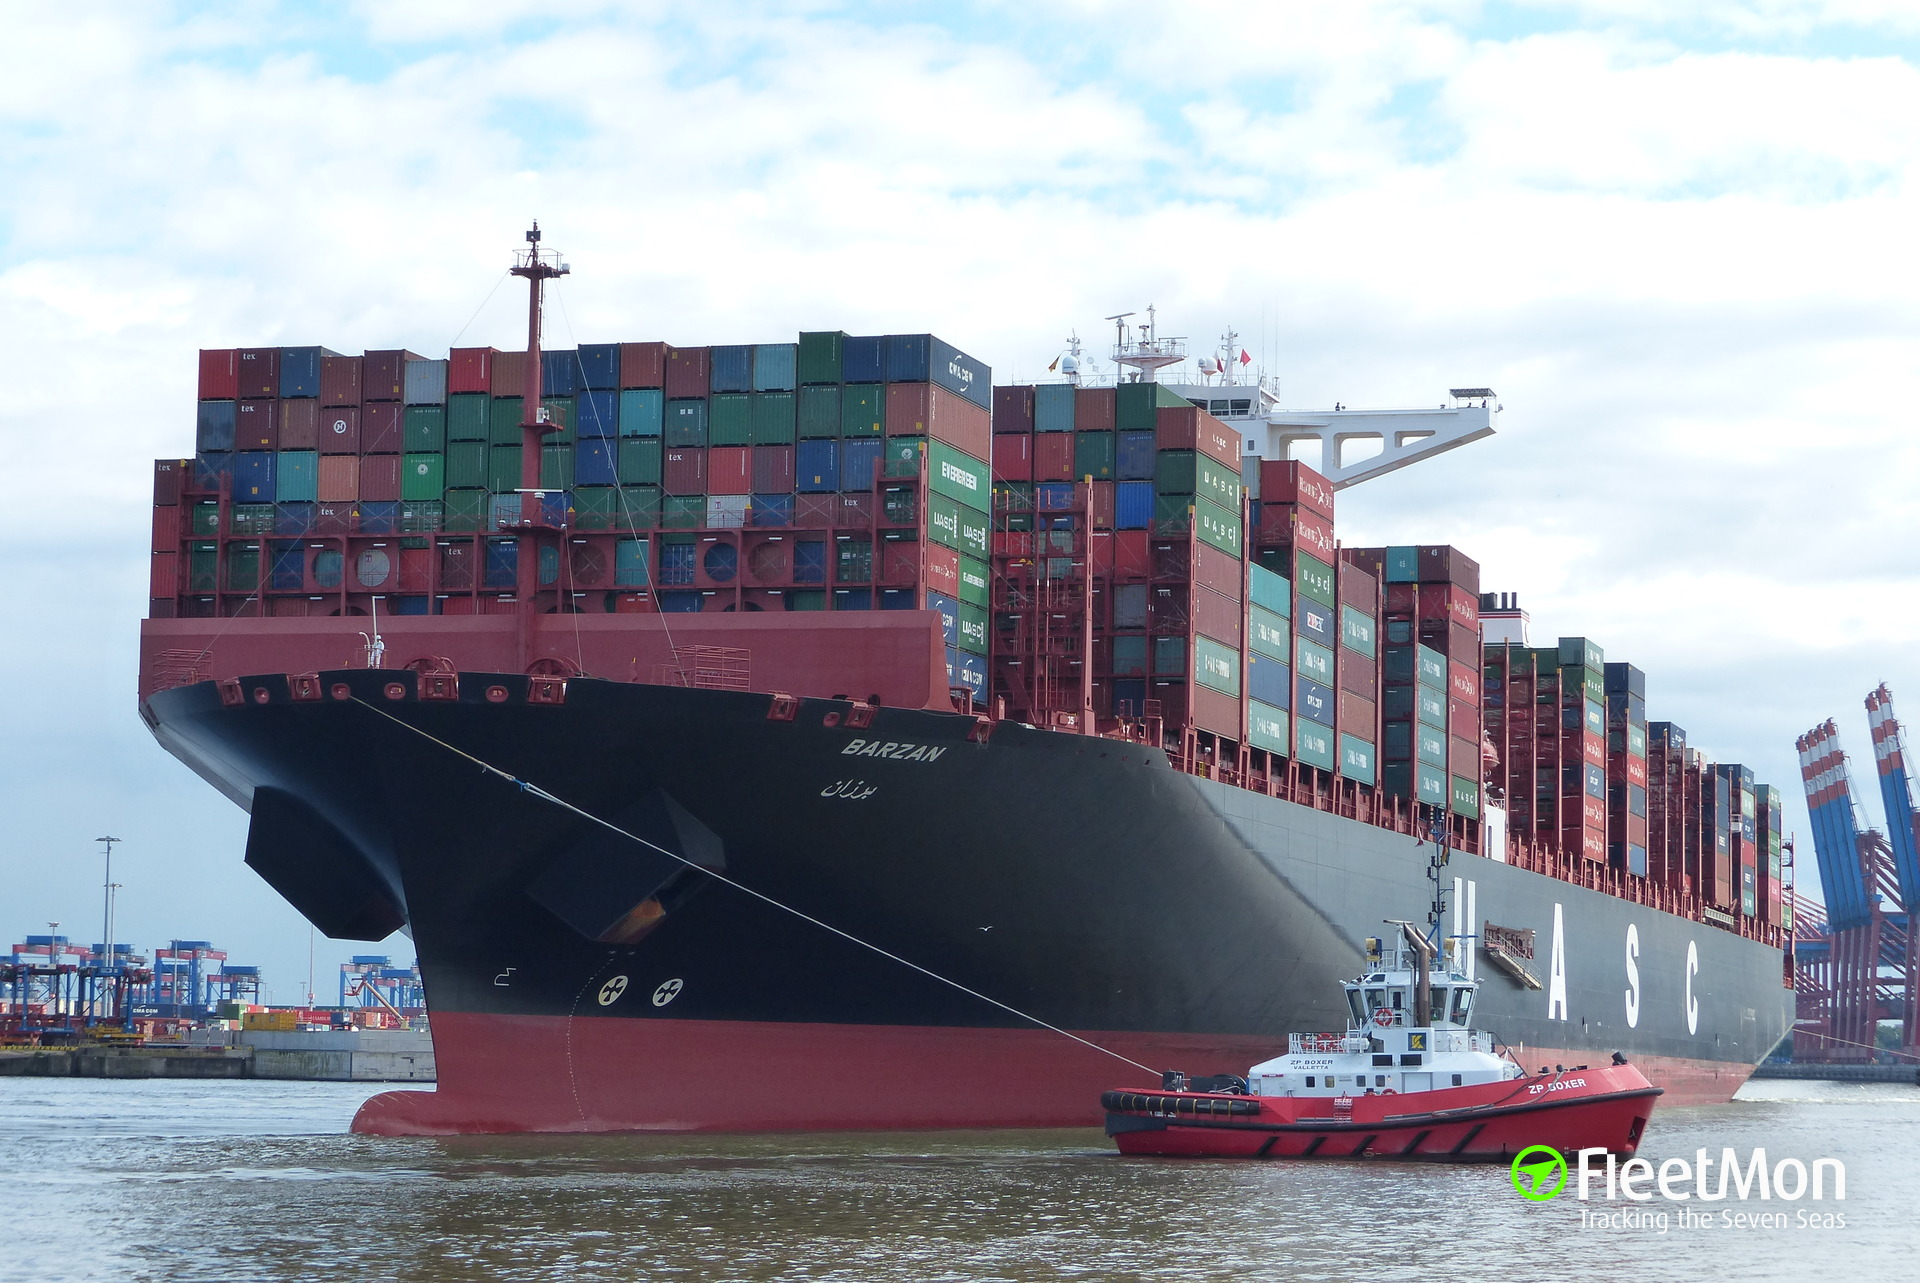 Ultra-large container ship Barzan fire